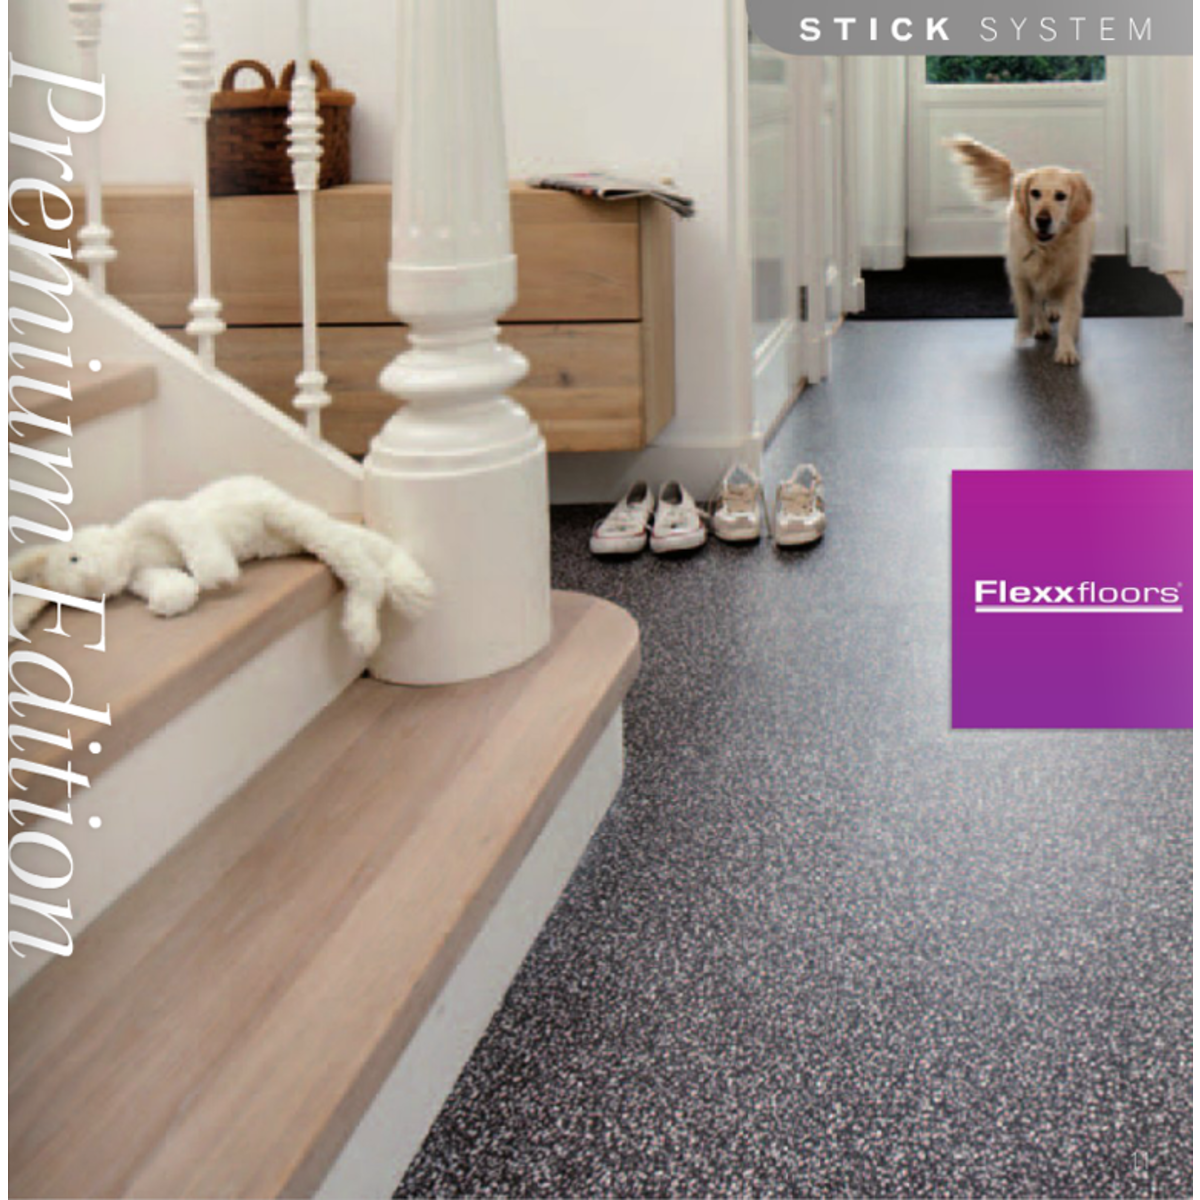 Flexxfloors premium collection pvc vloer houtdessin wit eiken ...